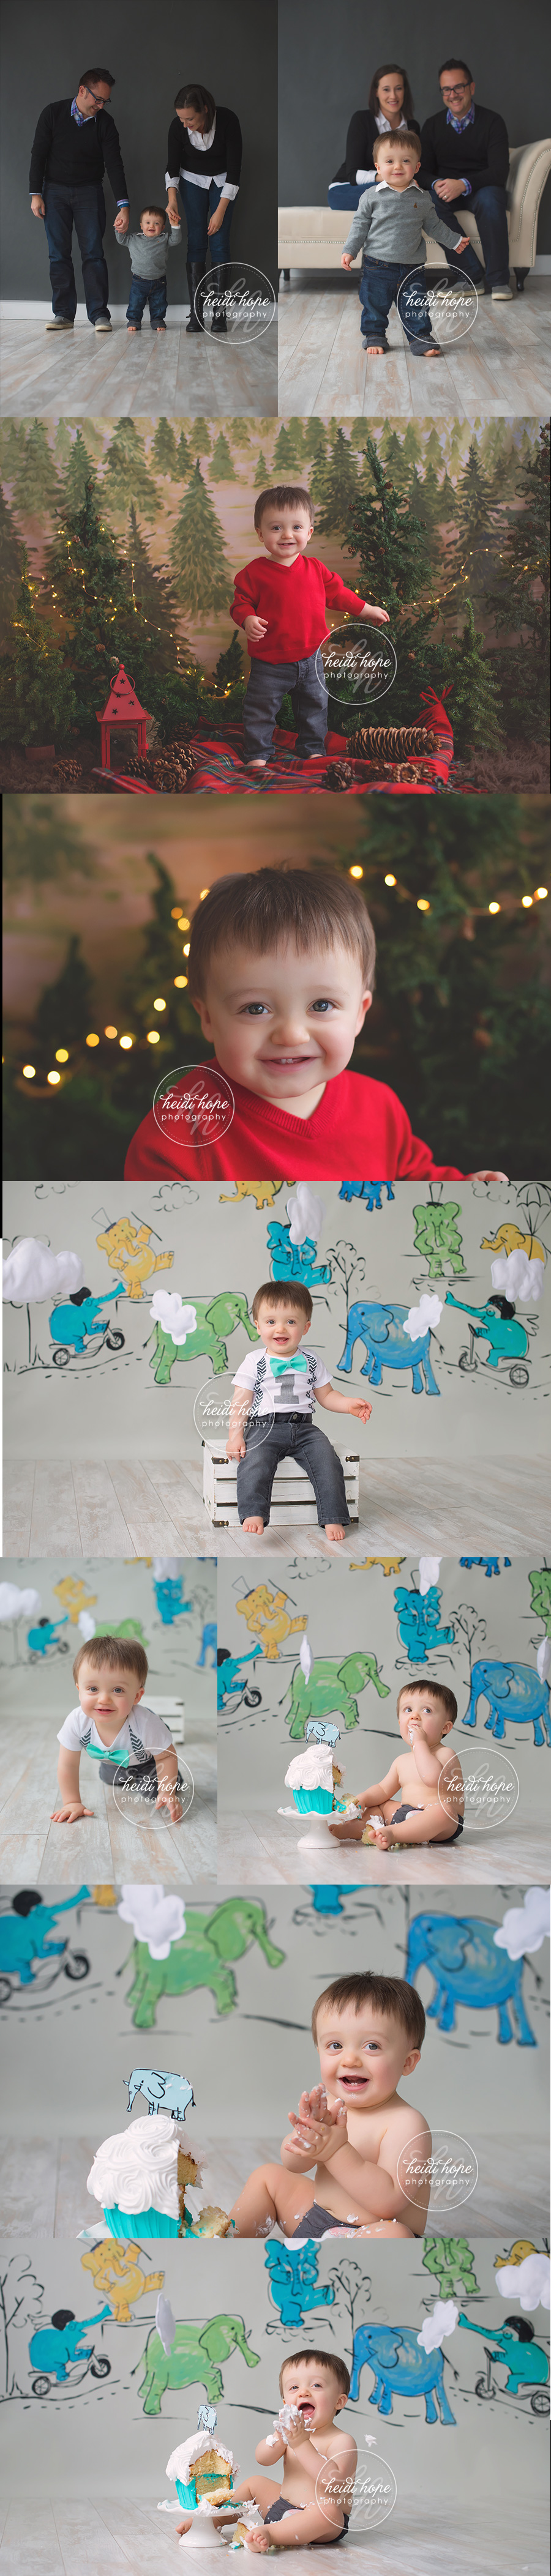 they-might-be-giants-elephant-cakesmash-and-holiday-portraits